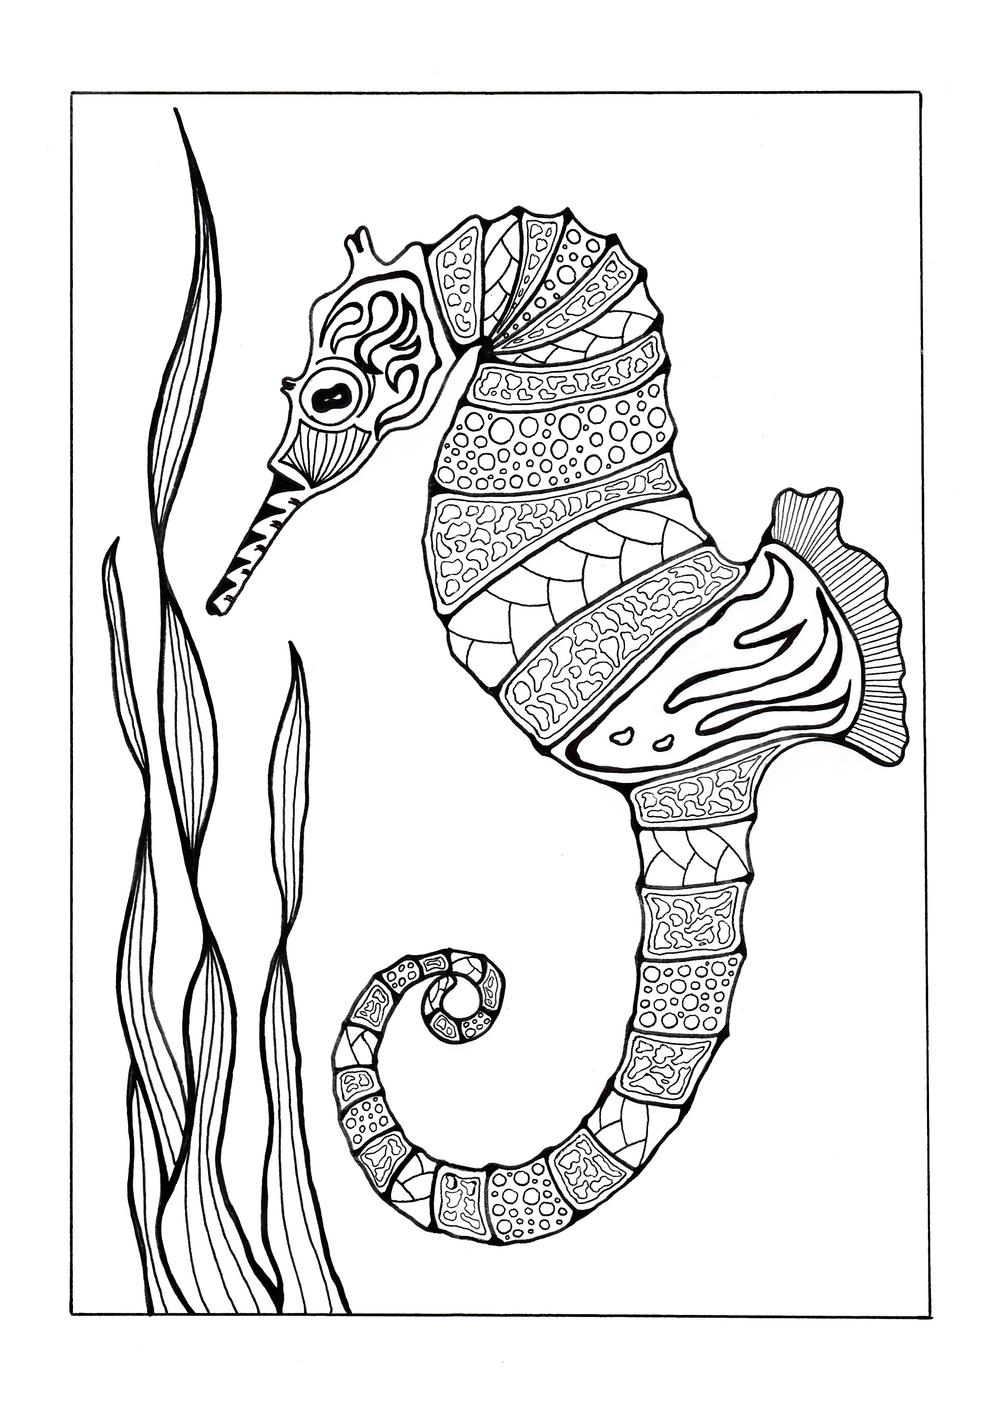 Colorful Seahorse Adult Coloring Page FaveCraftscom